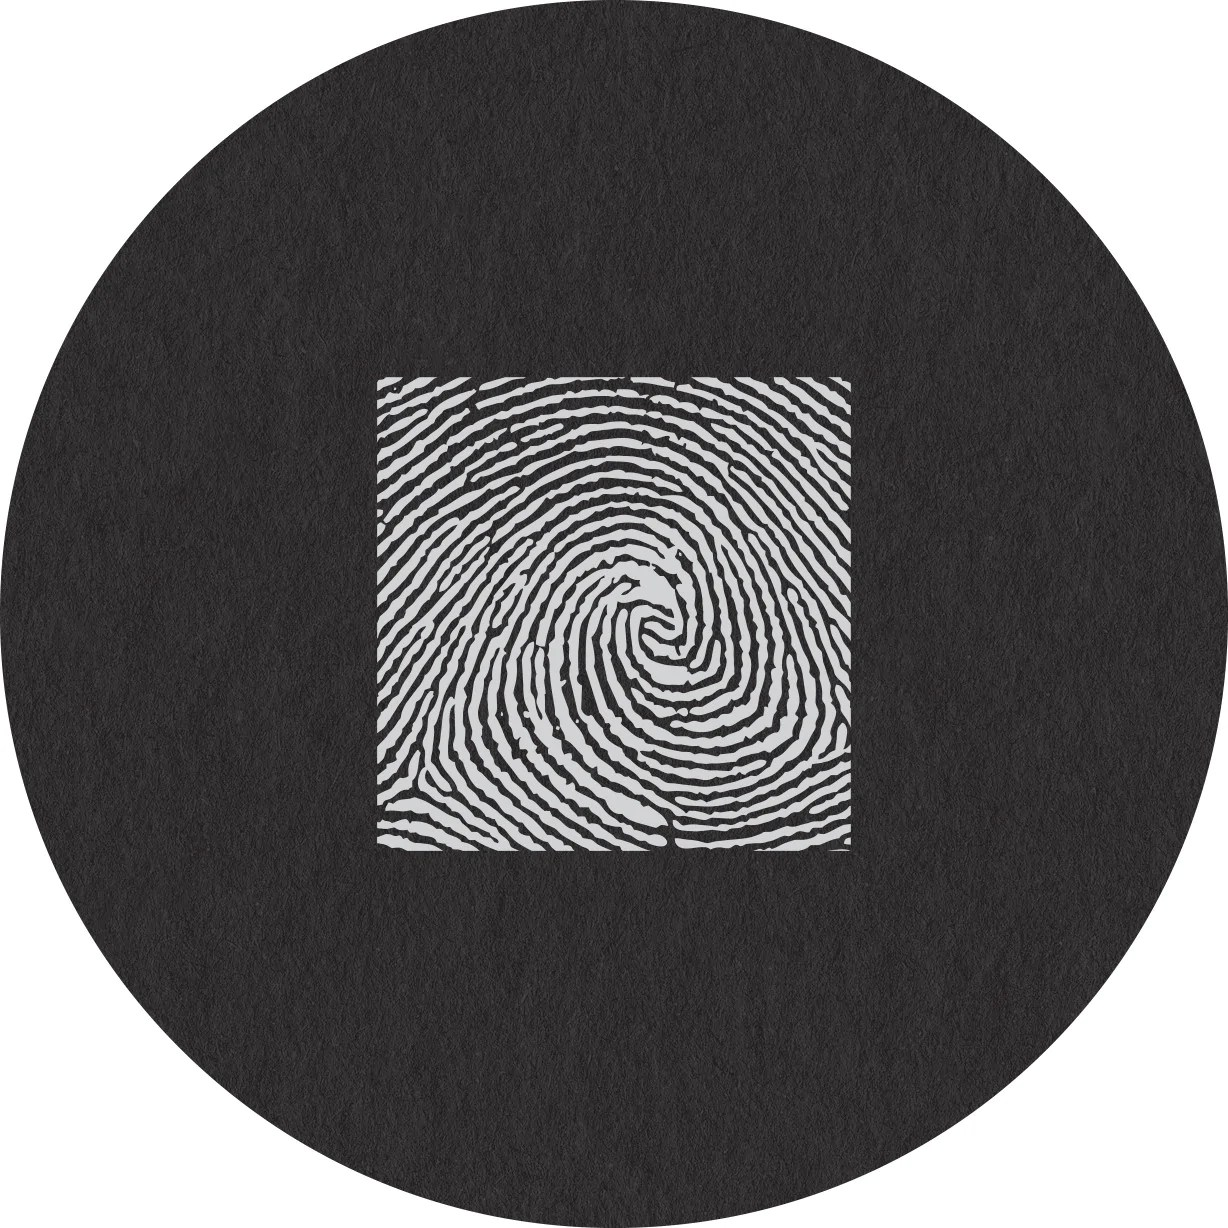 Breakage - Elmhurst Dub // Anymore , Vinyl - Index, Unearthed Sounds - 1